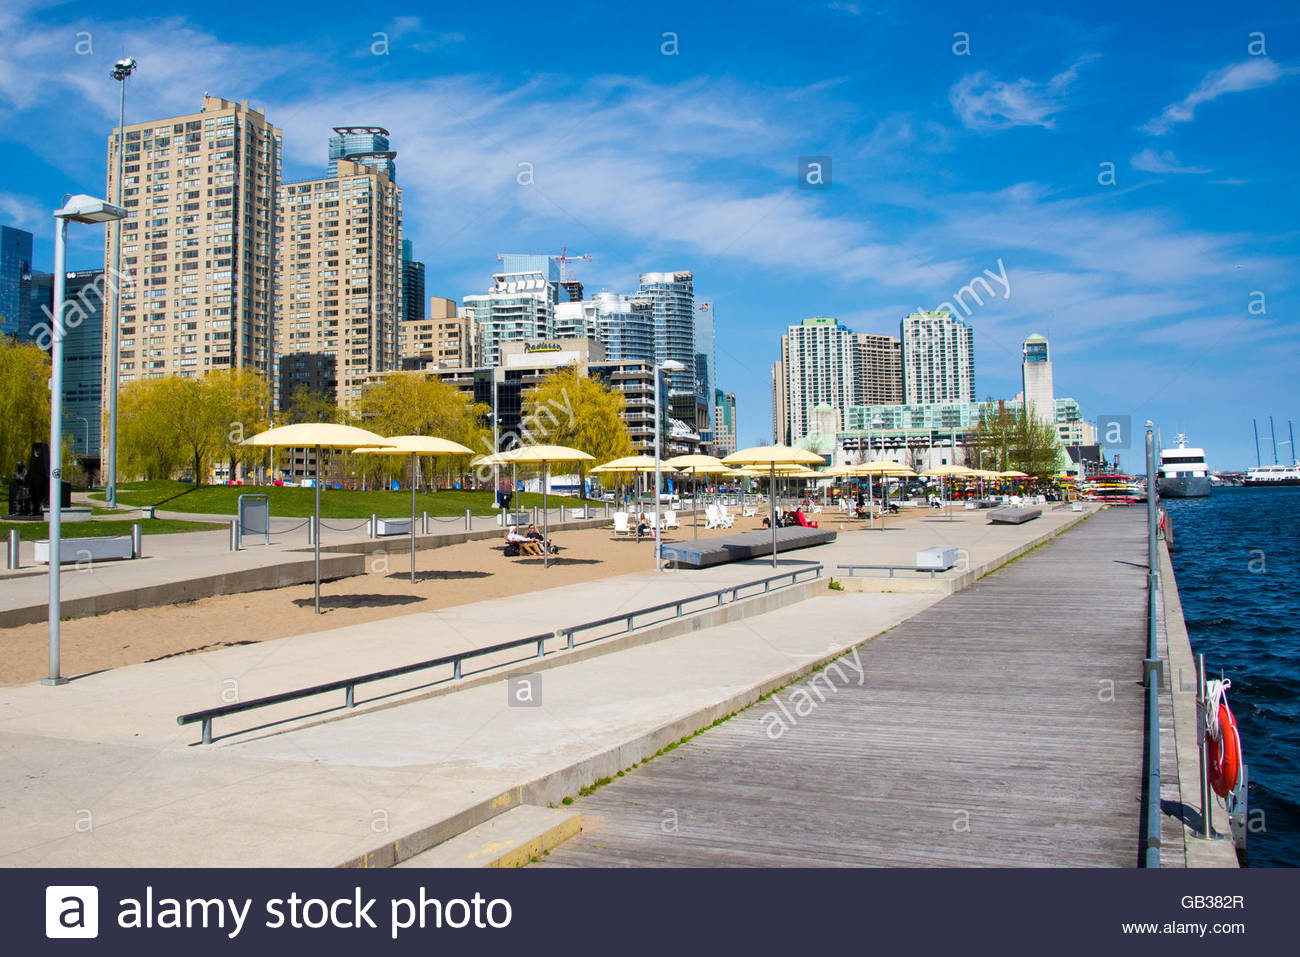 Toronto skyline: Beautiful modern architecturaly designed skyscrapers seen from Toronto's harbour front. - Stock Image